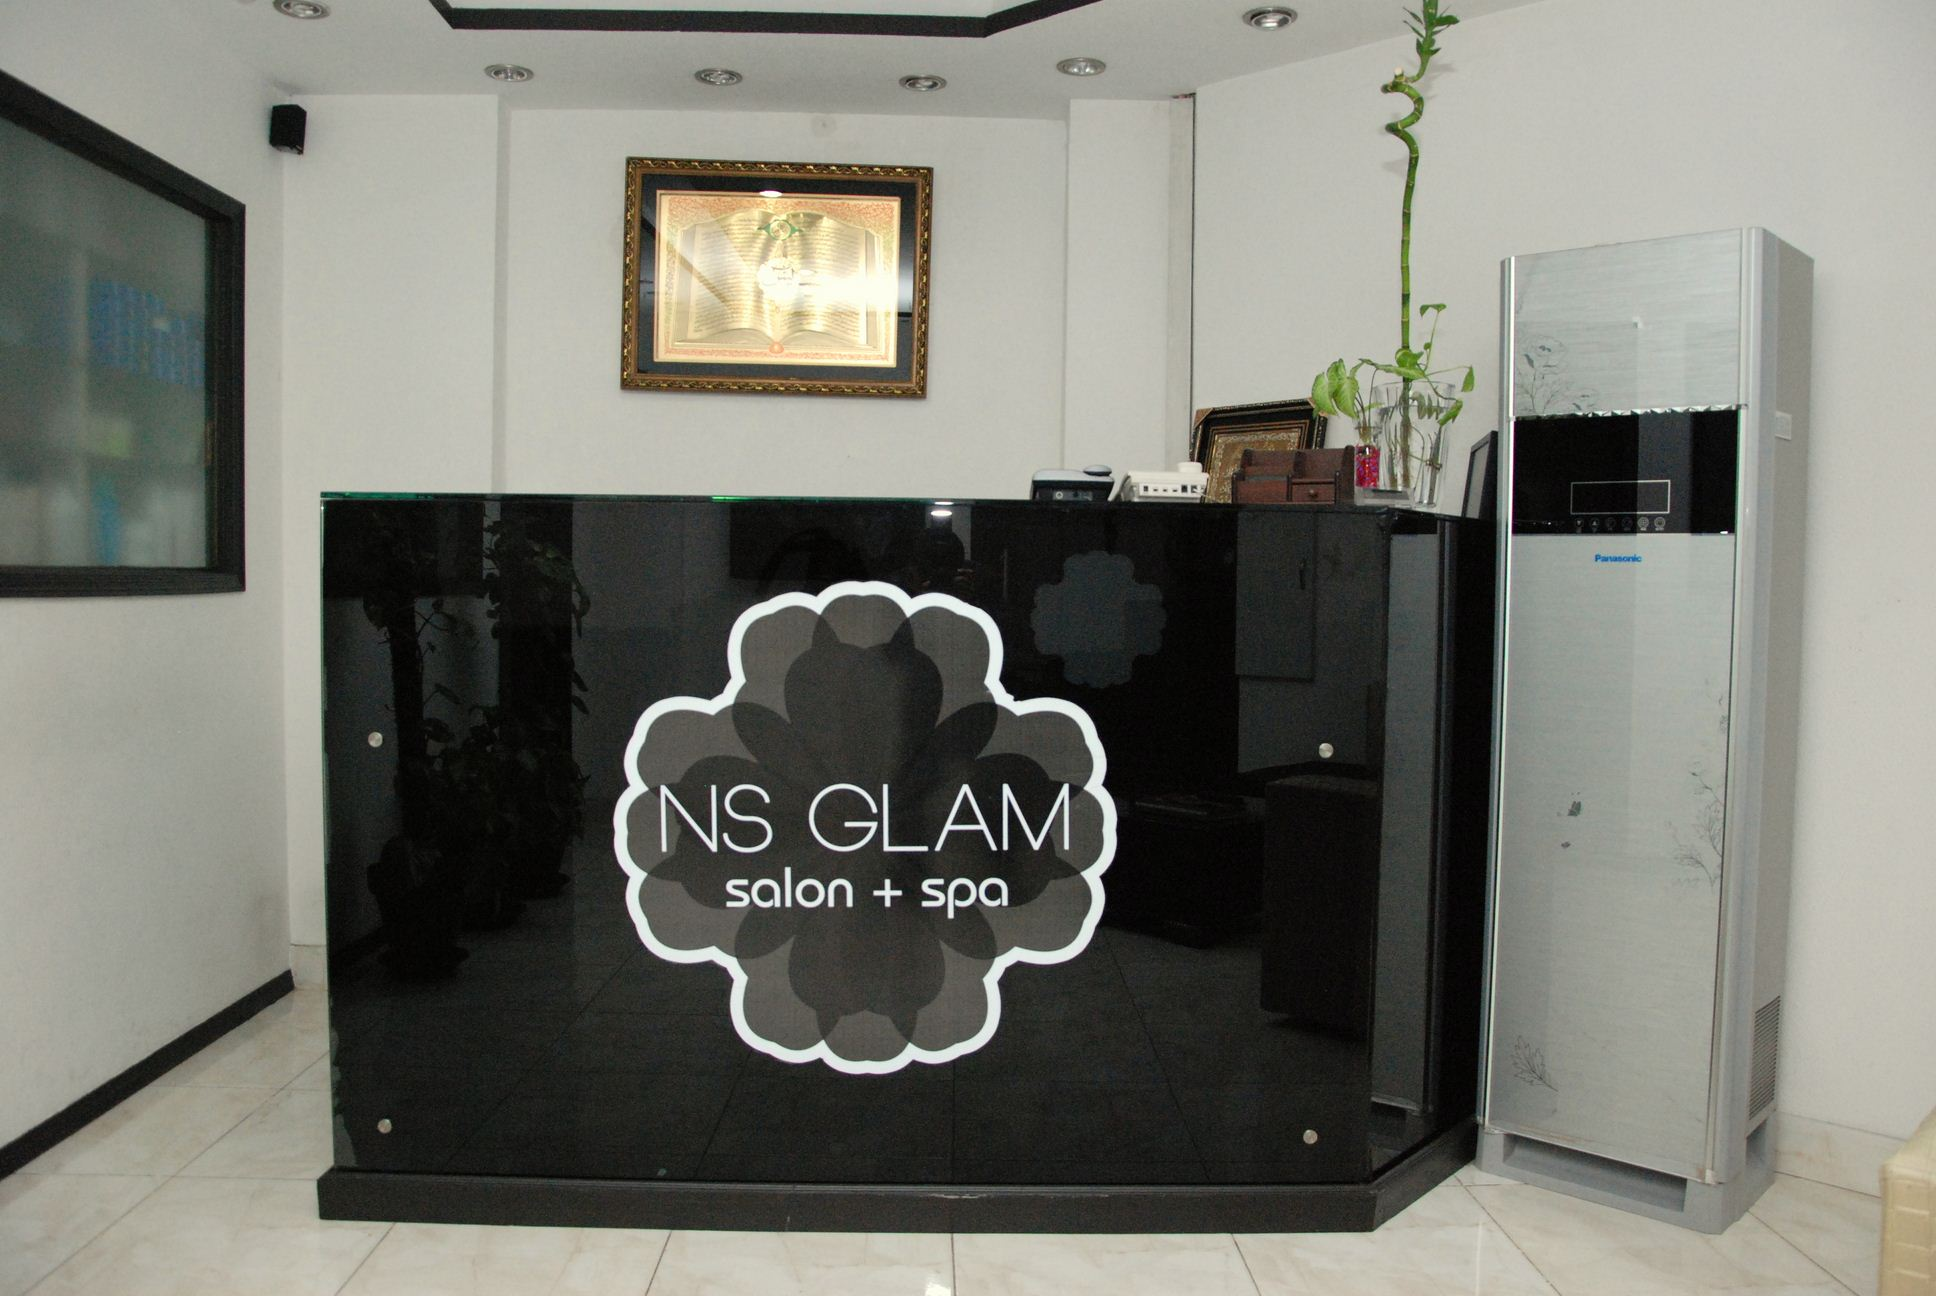 Receive a Janssen Whitening Facial + Whitening Polish & Skin Glow + Haircut OR Hair Protein Treatment + Whitening Manicure & Pedicure or Half Arms Wax + Threading From NS Glam Spa & Salon